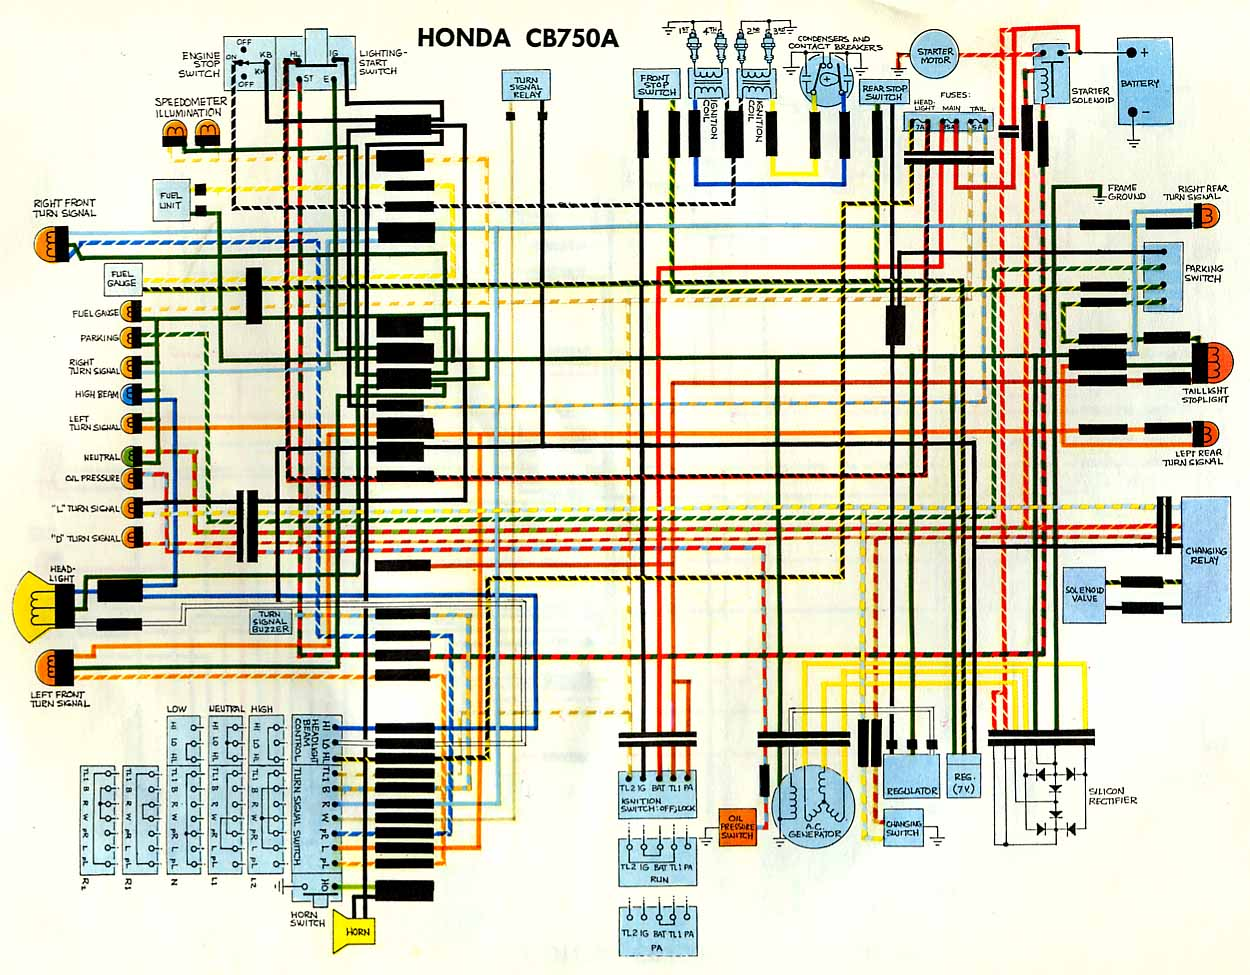 Index Of Mc Wiringdiagrams 2004 Ford Ranger Cbc Fuse Diagram Cb750a